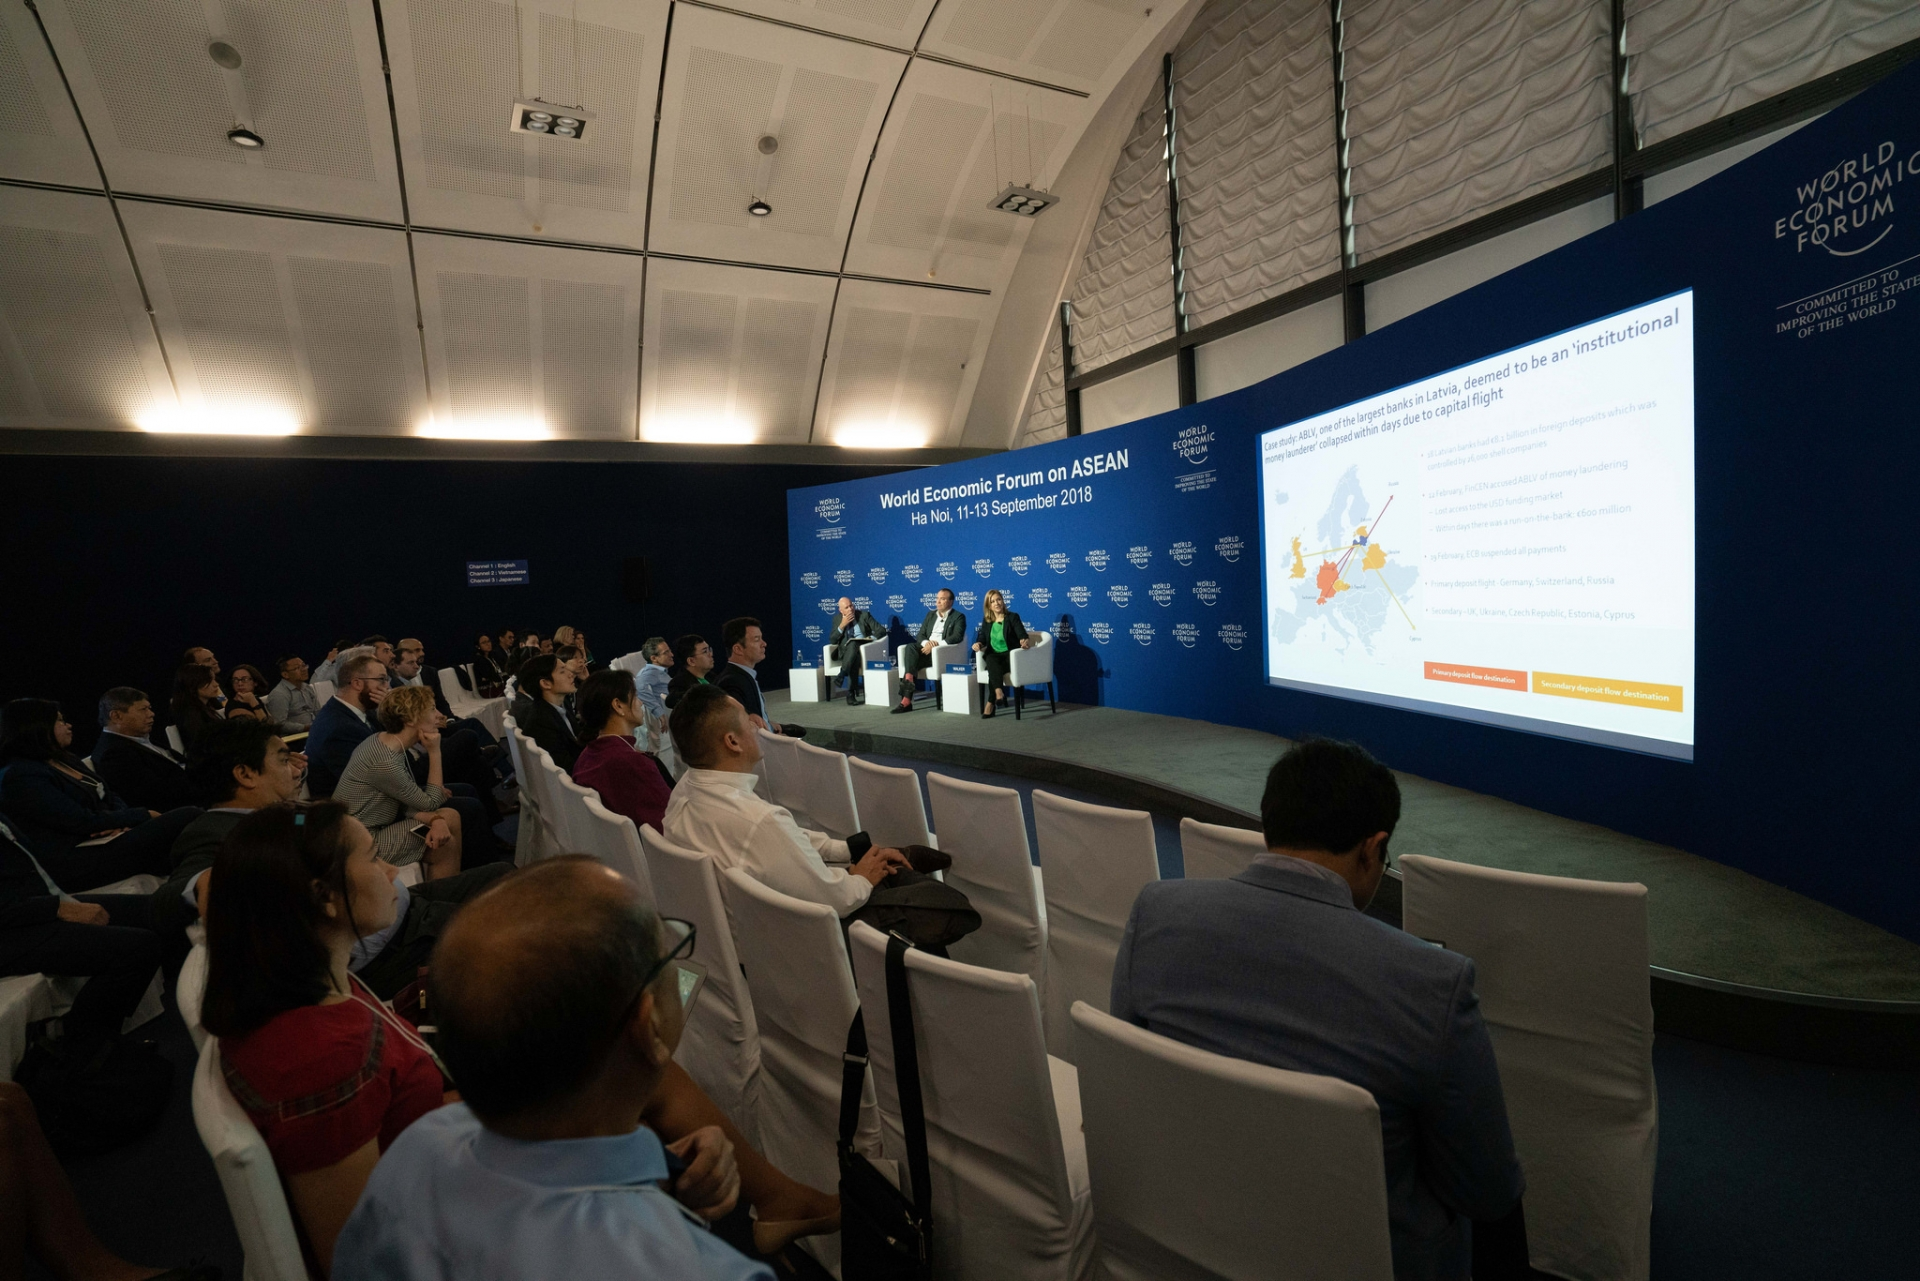 WEF on ASEAN wrapped up with pledges on digital growth